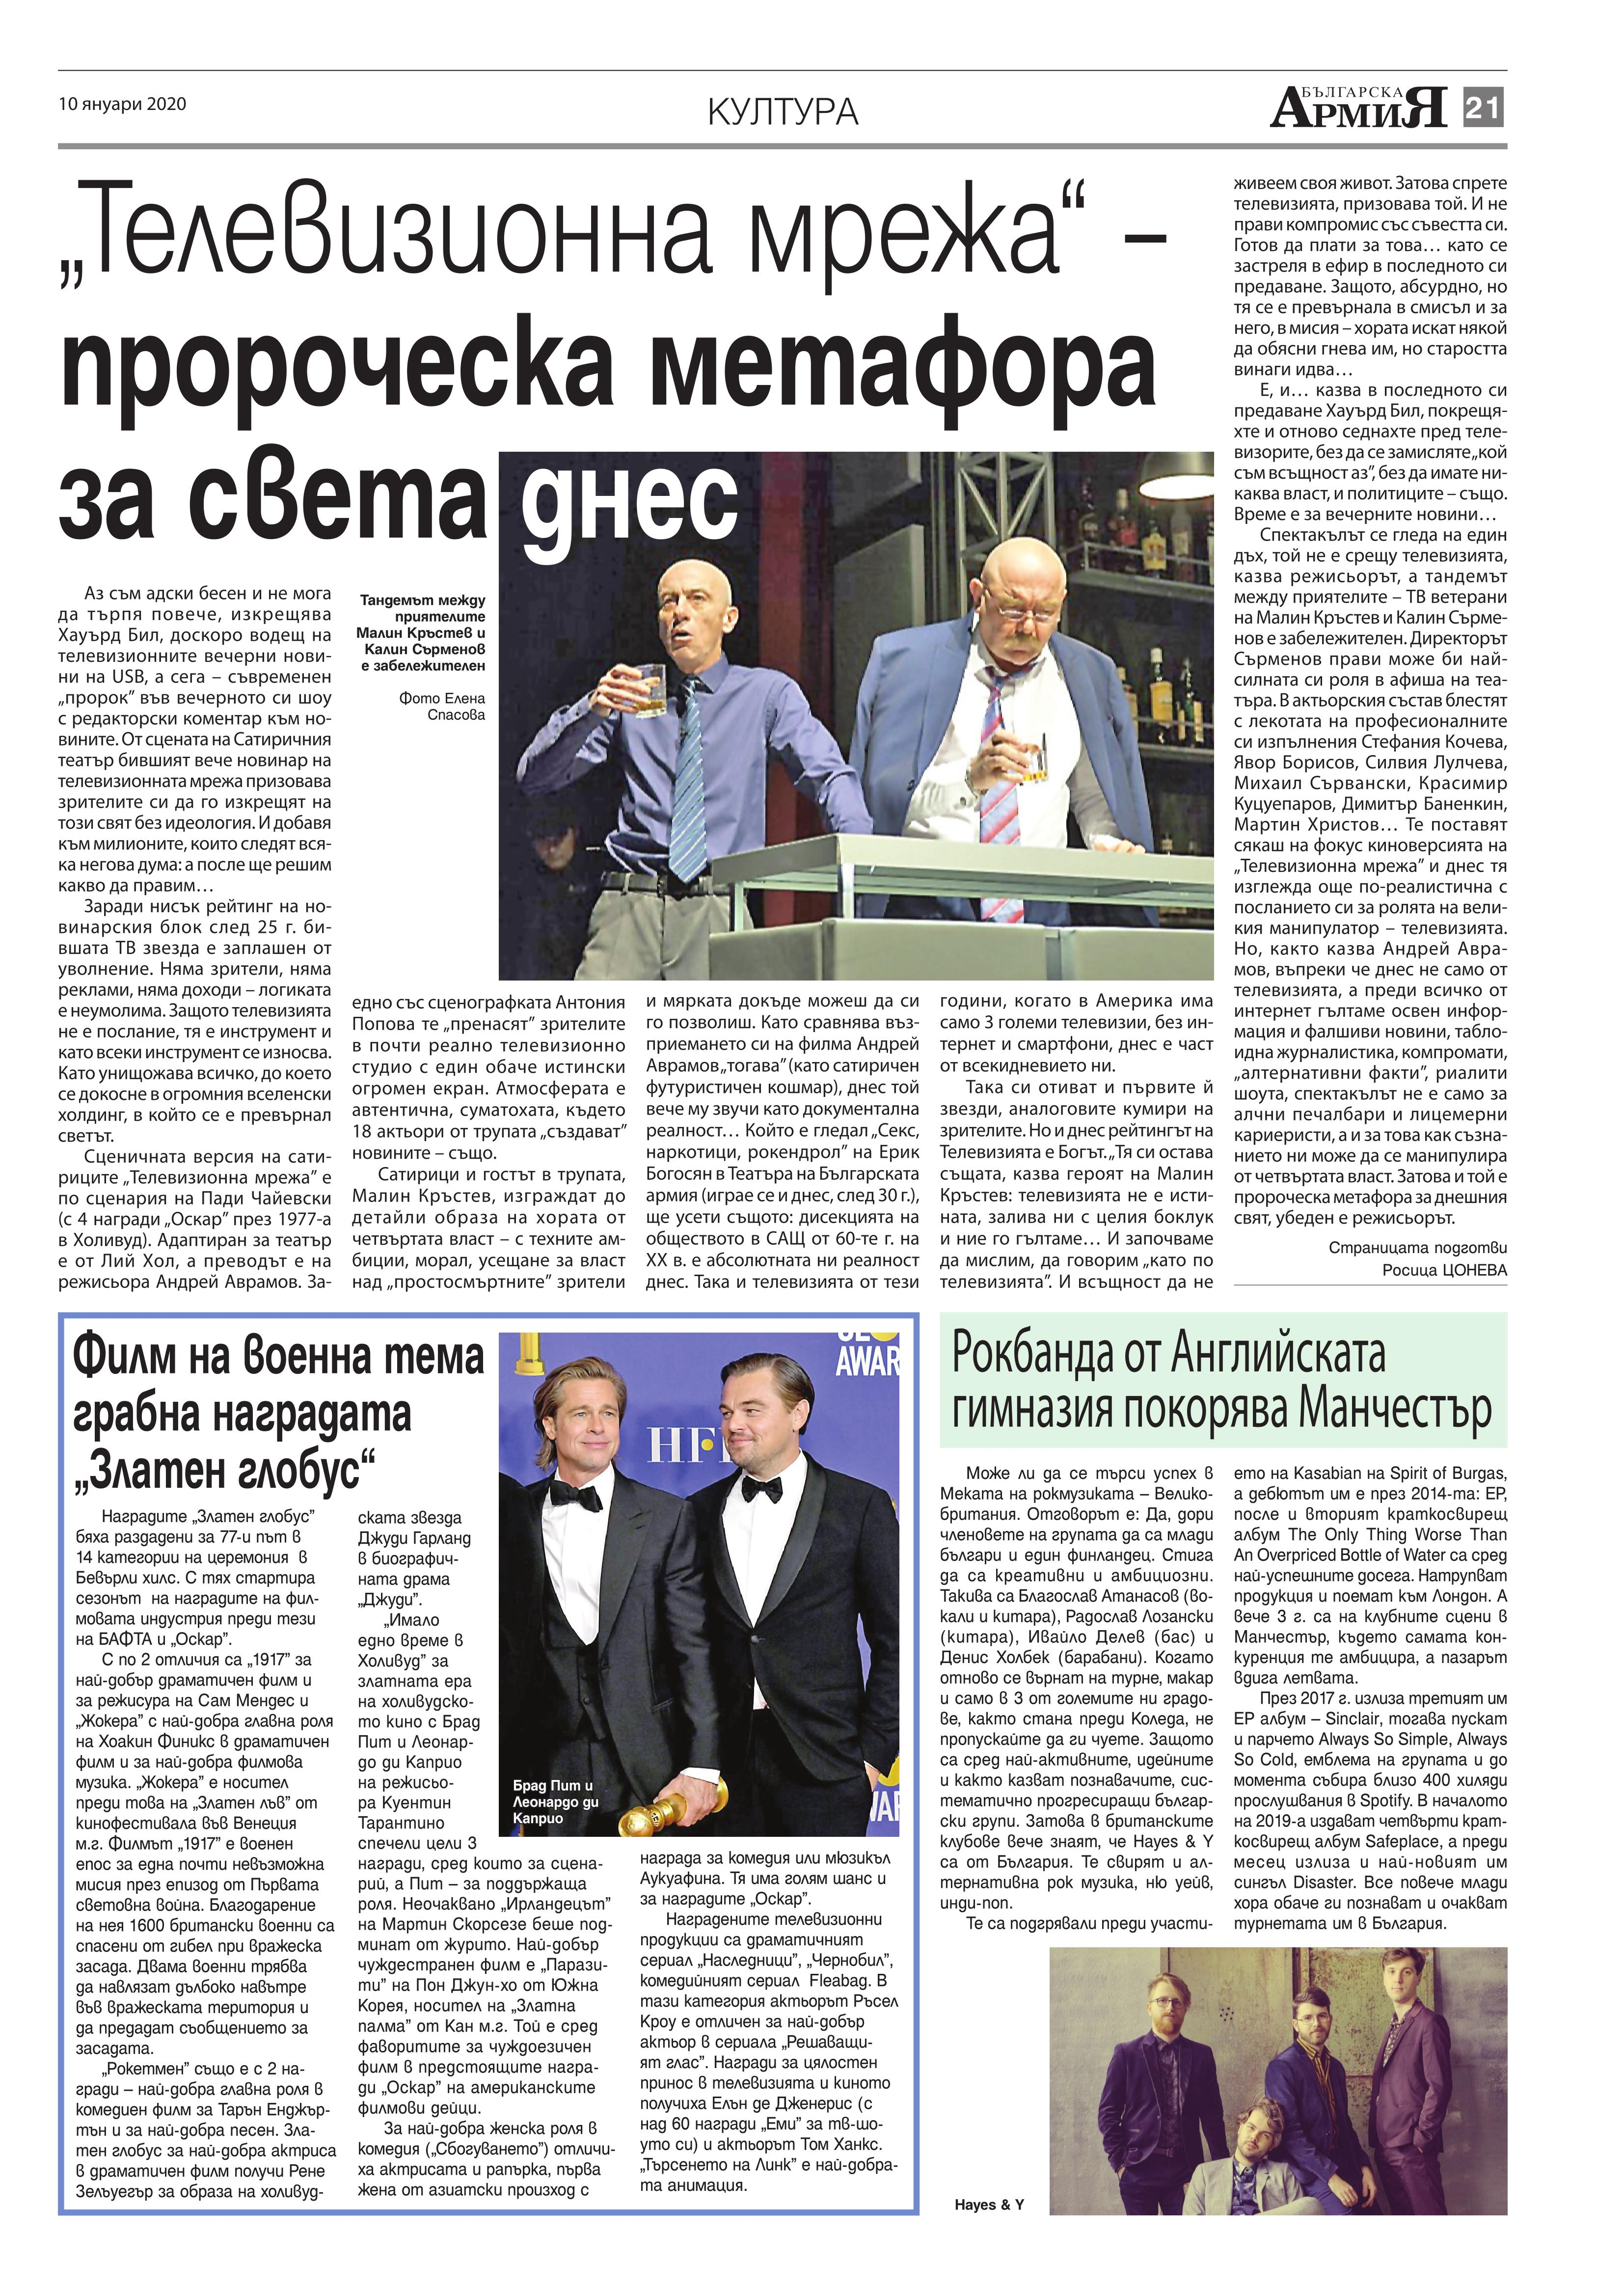 https://armymedia.bg/wp-content/uploads/2015/06/21.page1_-122.jpg